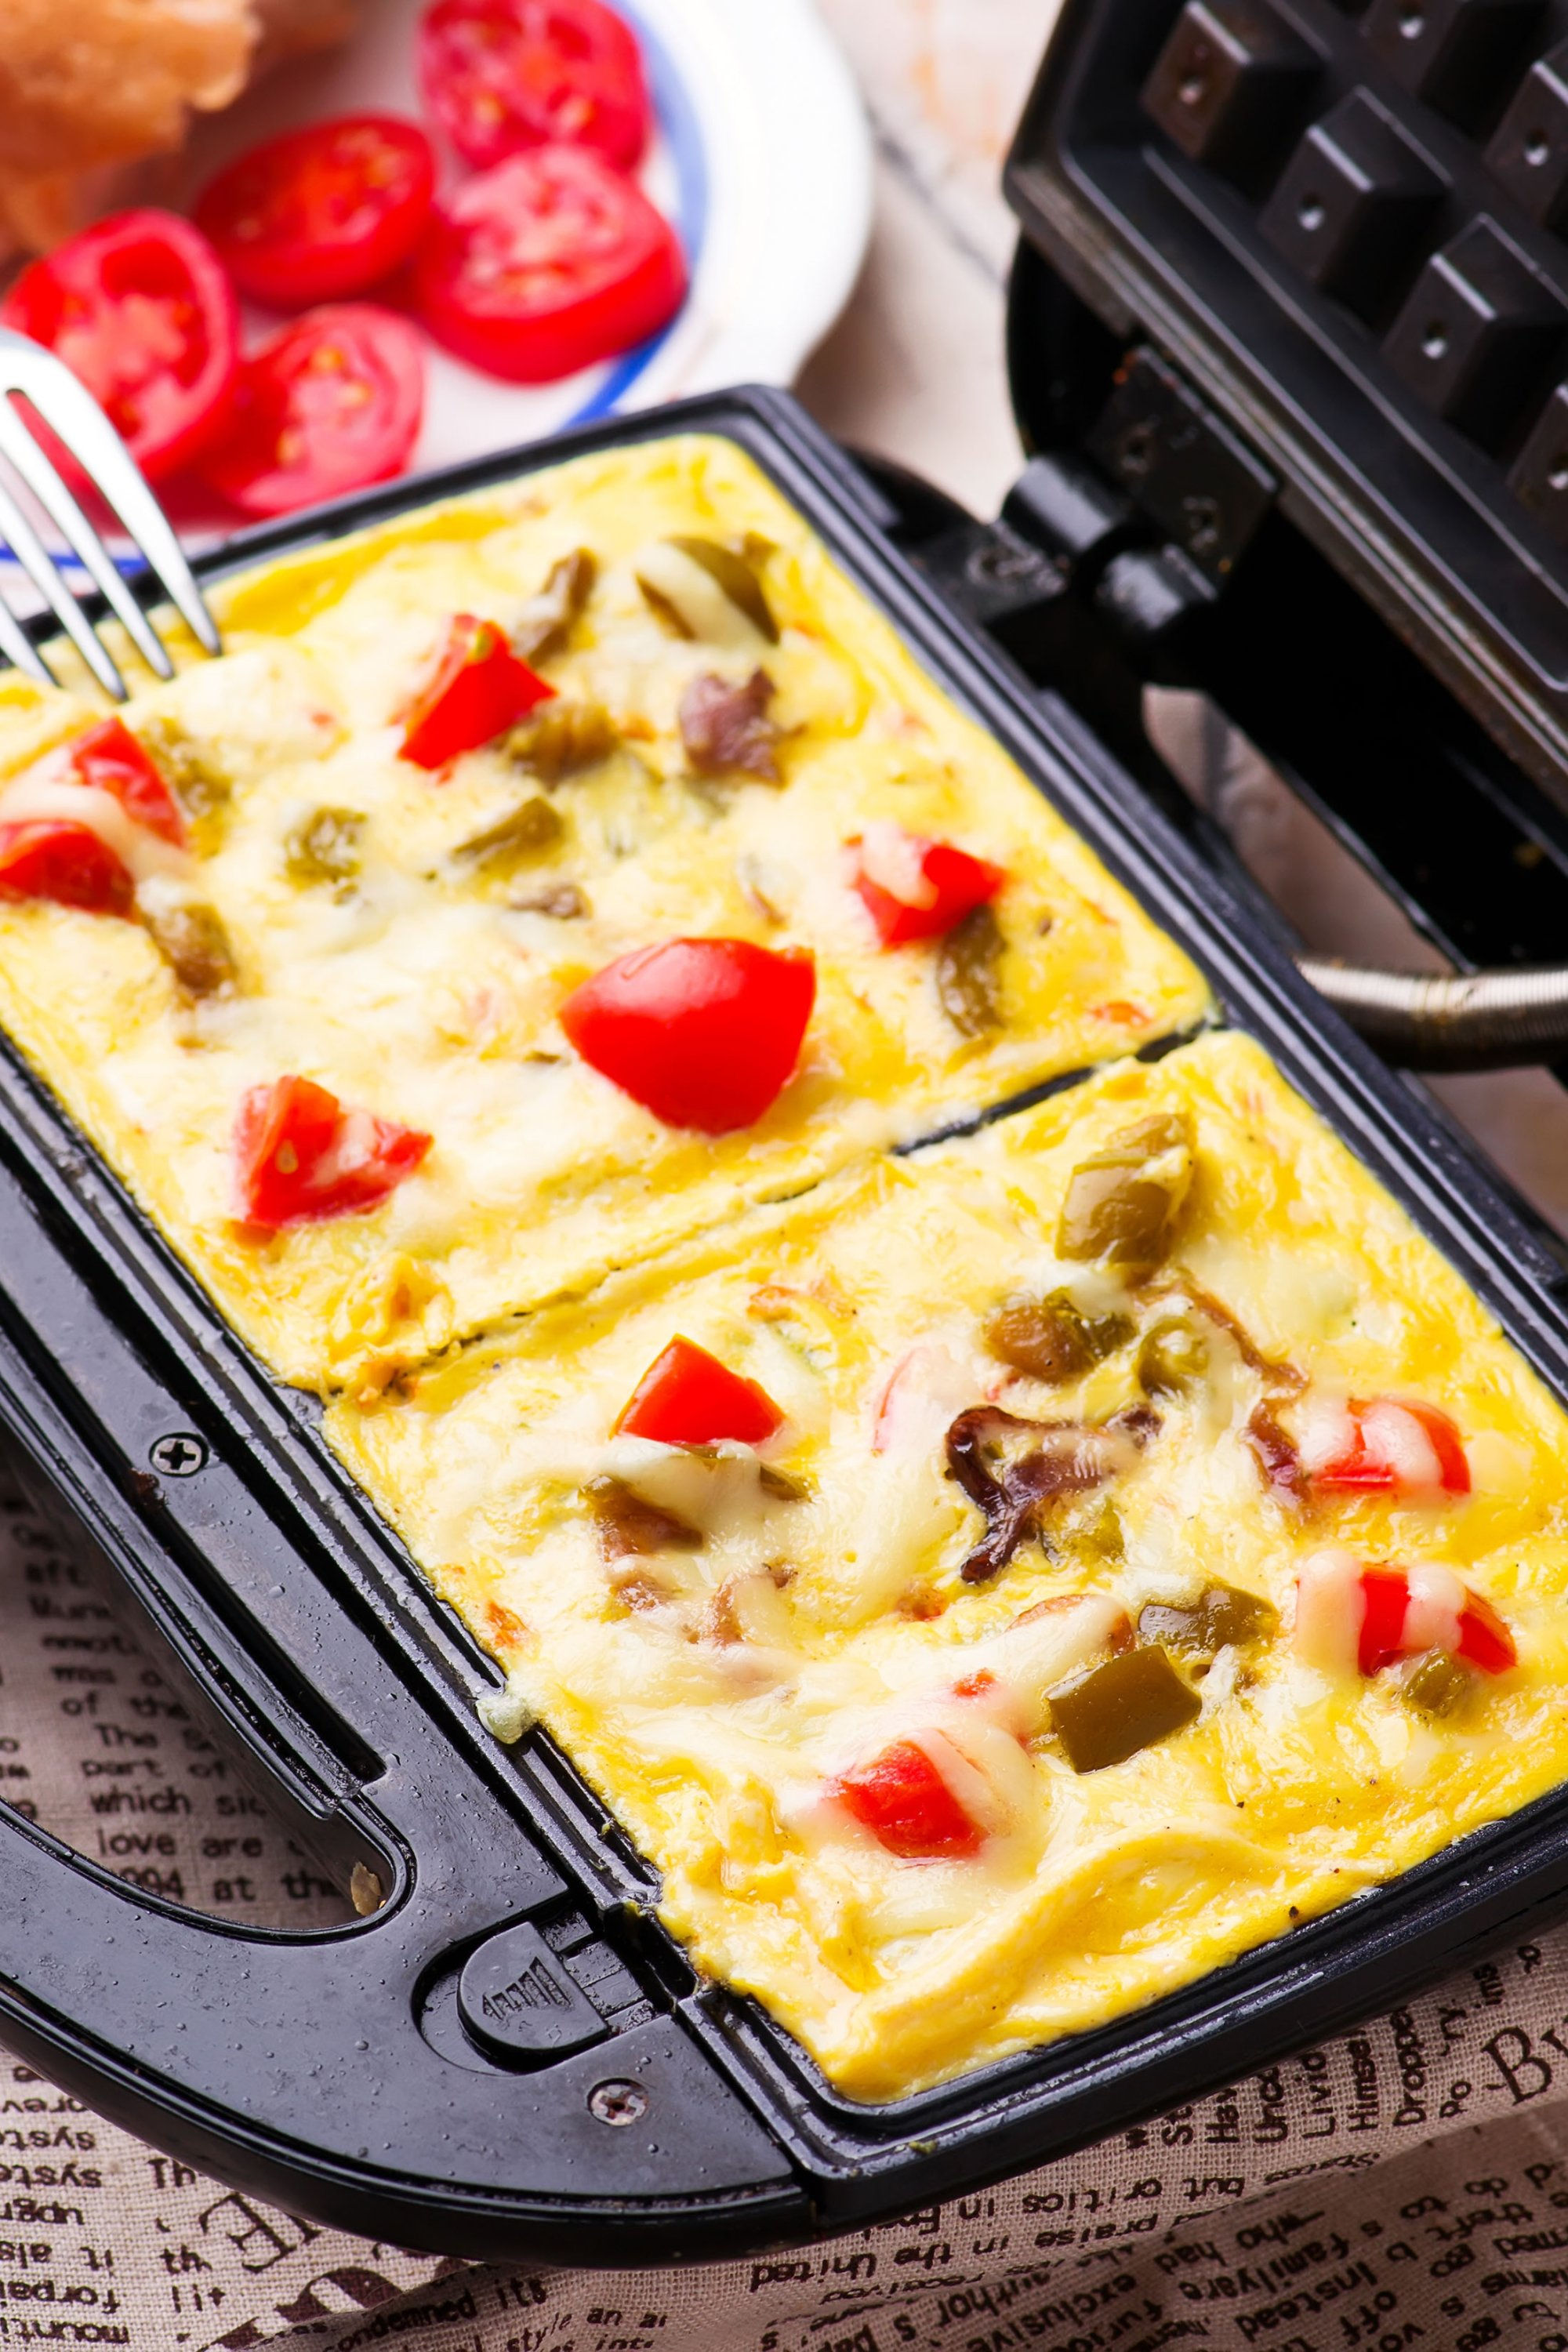 A waffle omelet saves you from trying to flip the omelet in a pan. (Shutterstock Photo)